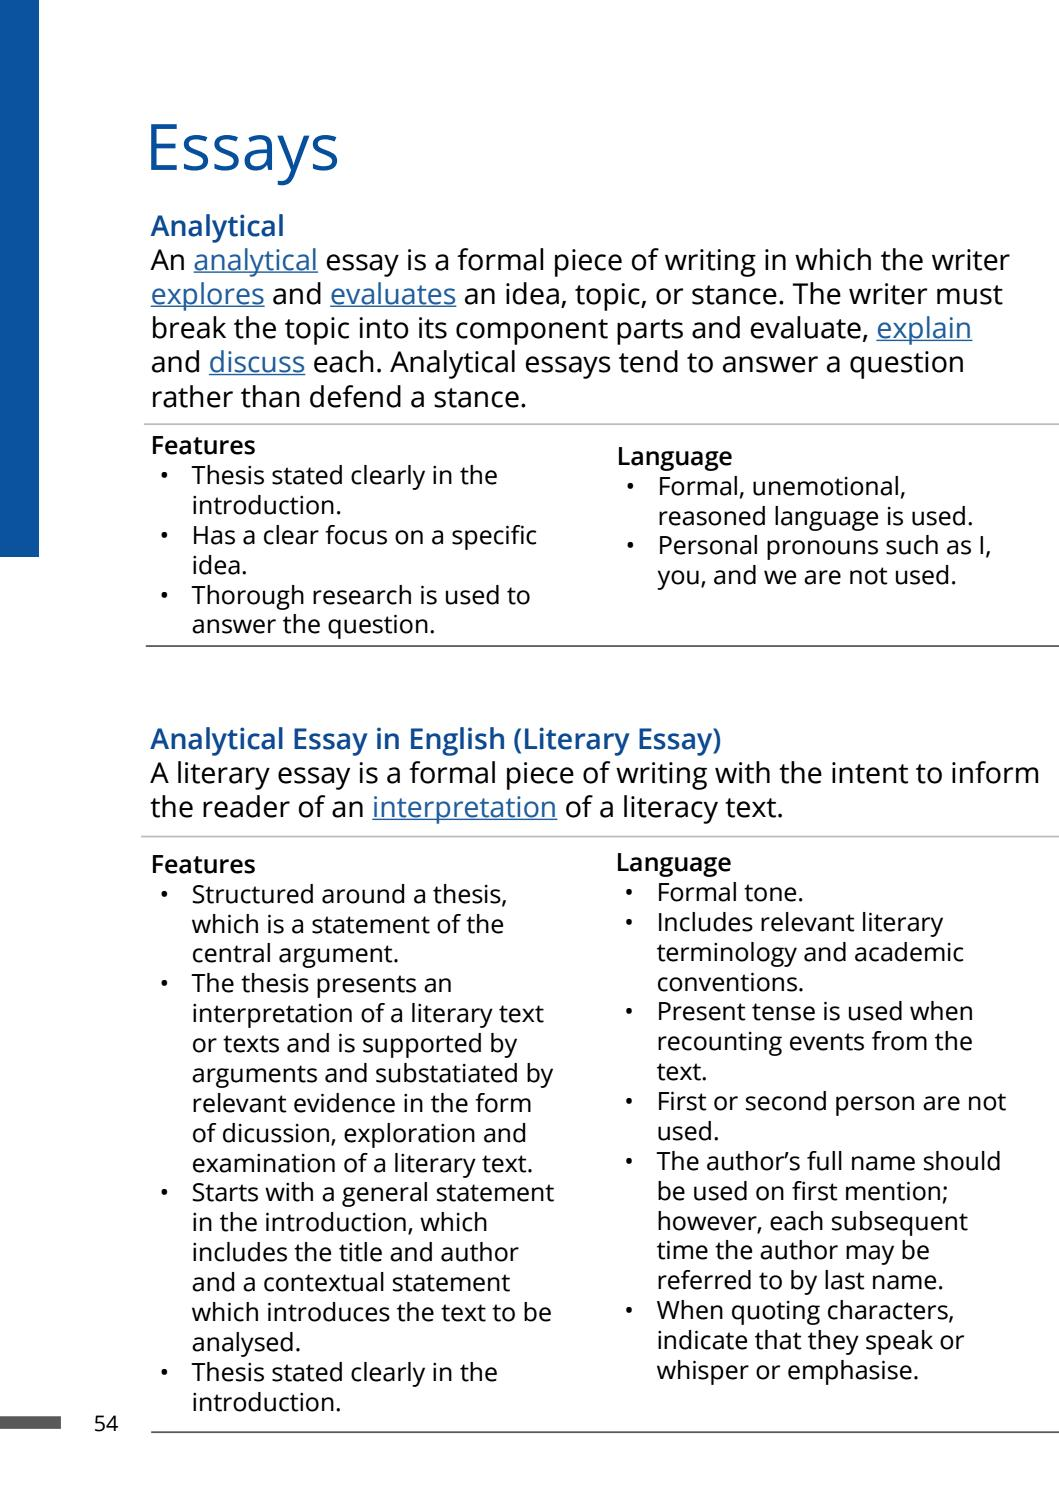 The Key Features that Make Your Essay Analytical